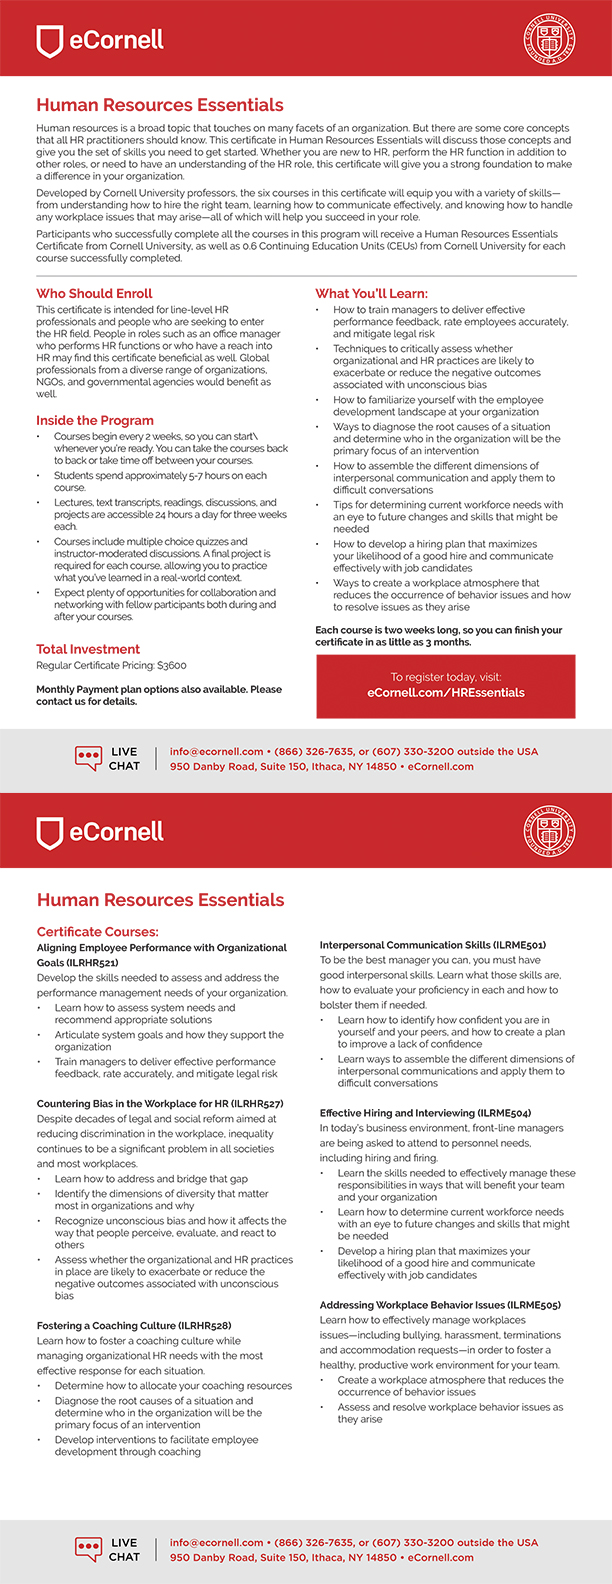 Human Resources Essentials Flyer